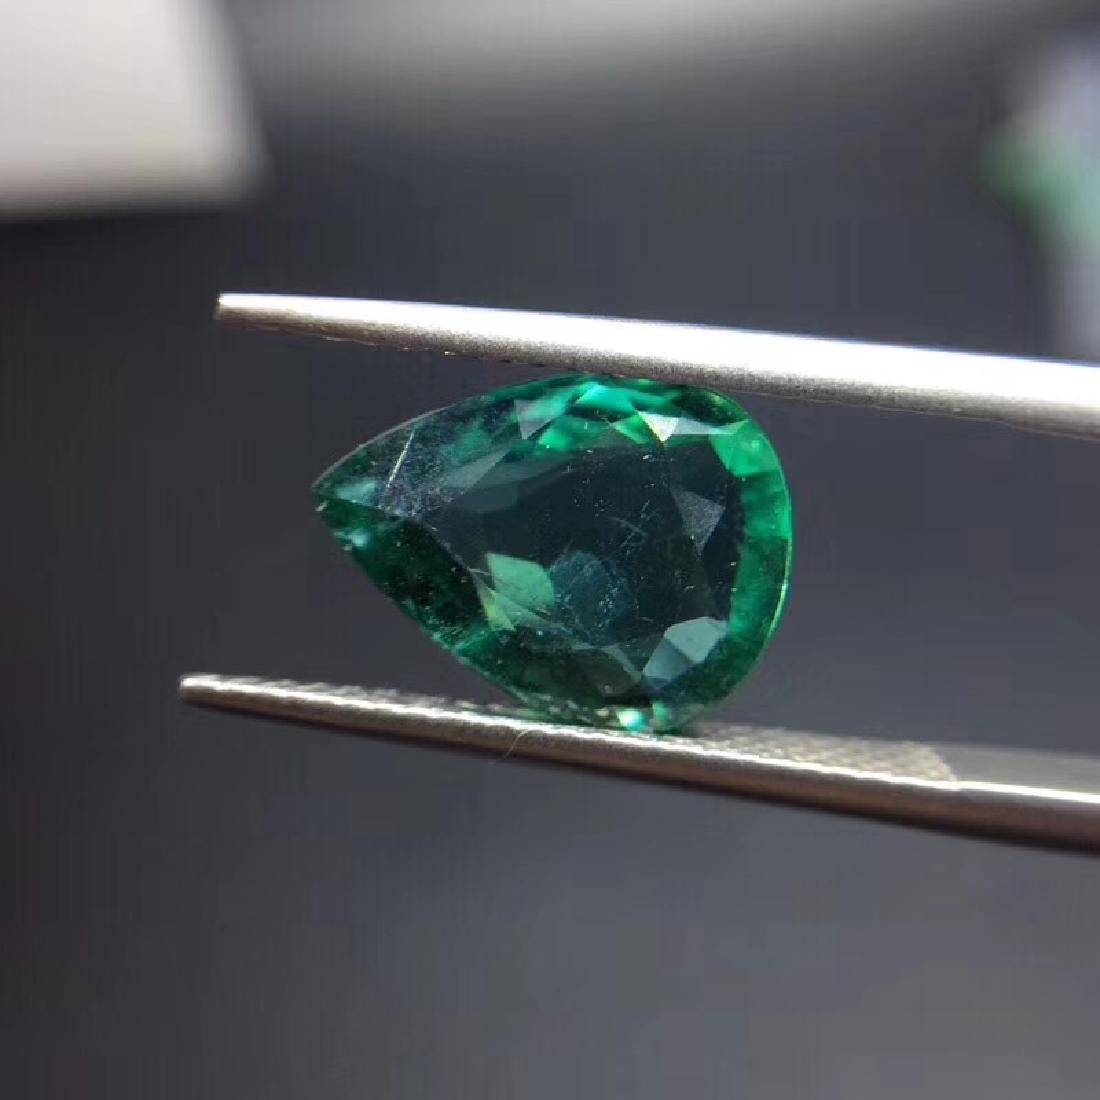 2.97 ct Emerald 9.3*12.3*4.2 mm Pear Cut - 3